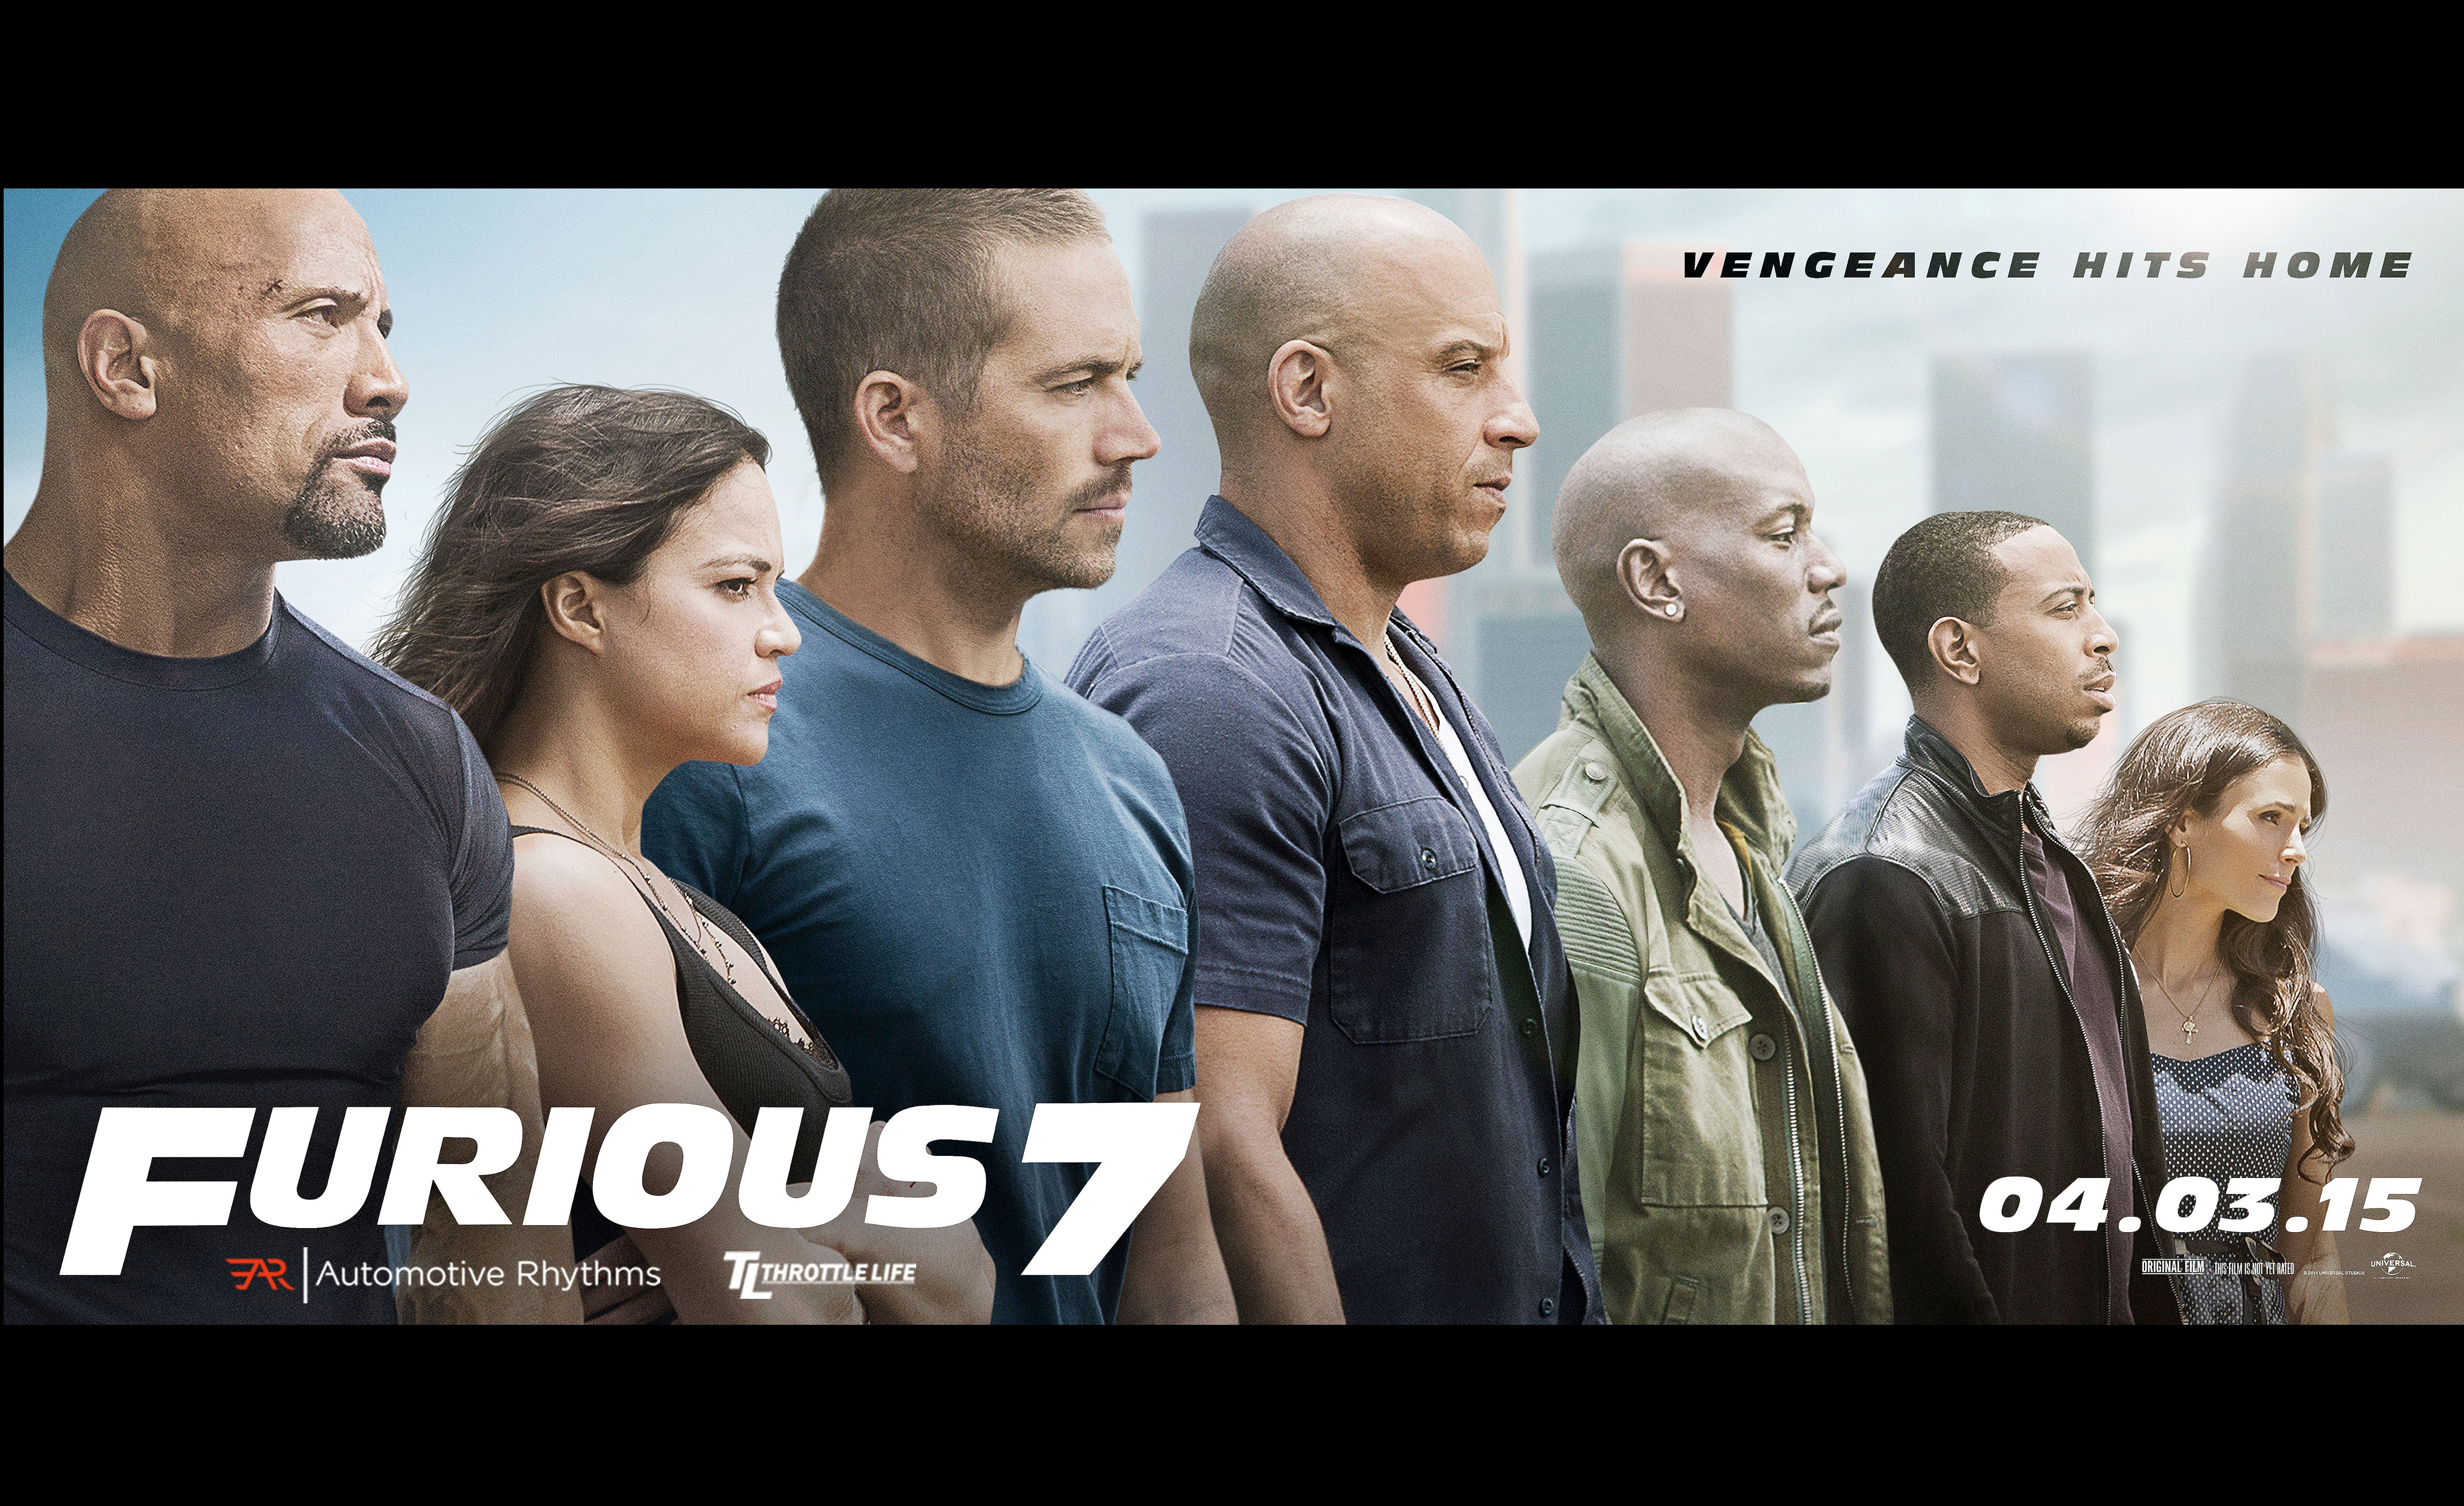 FAST FURIOUS 7 Action Thriller Race Racing Crime Ff7 1ff7